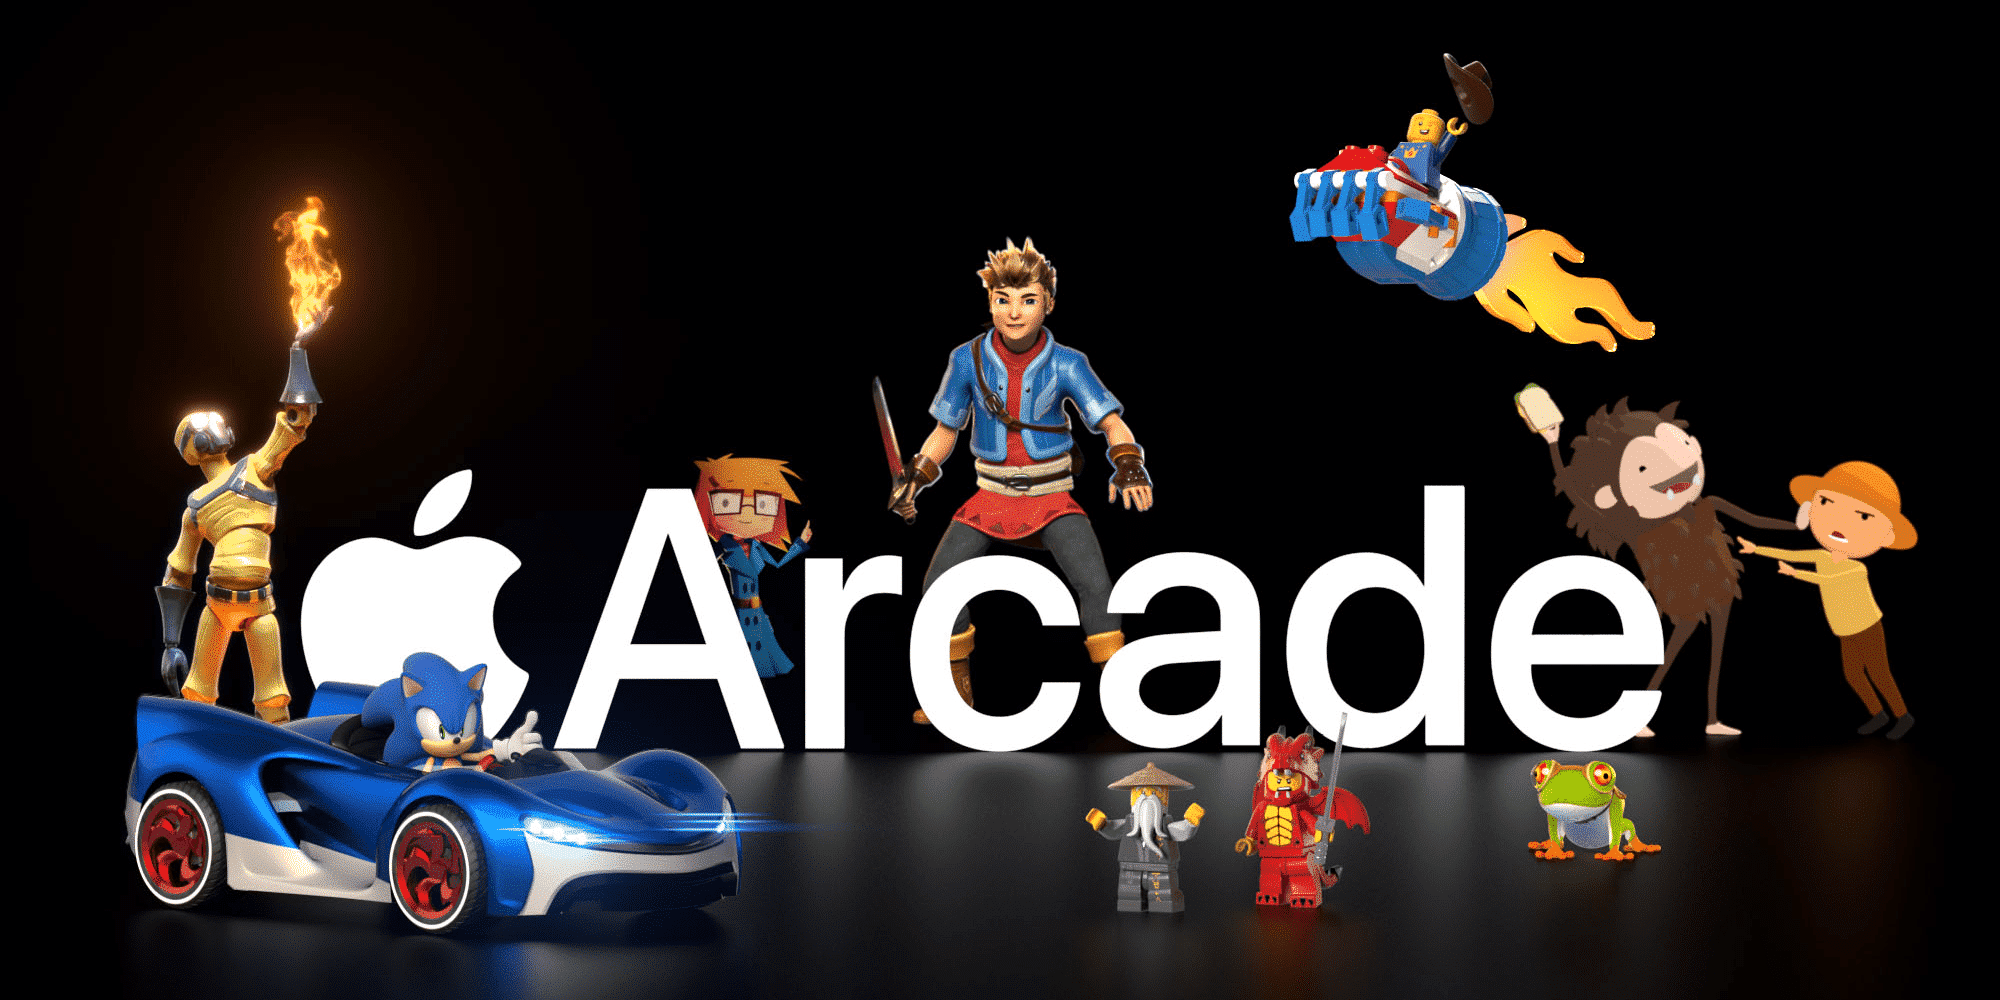 Apple website 'Taken Over' by Apple Arcade characters